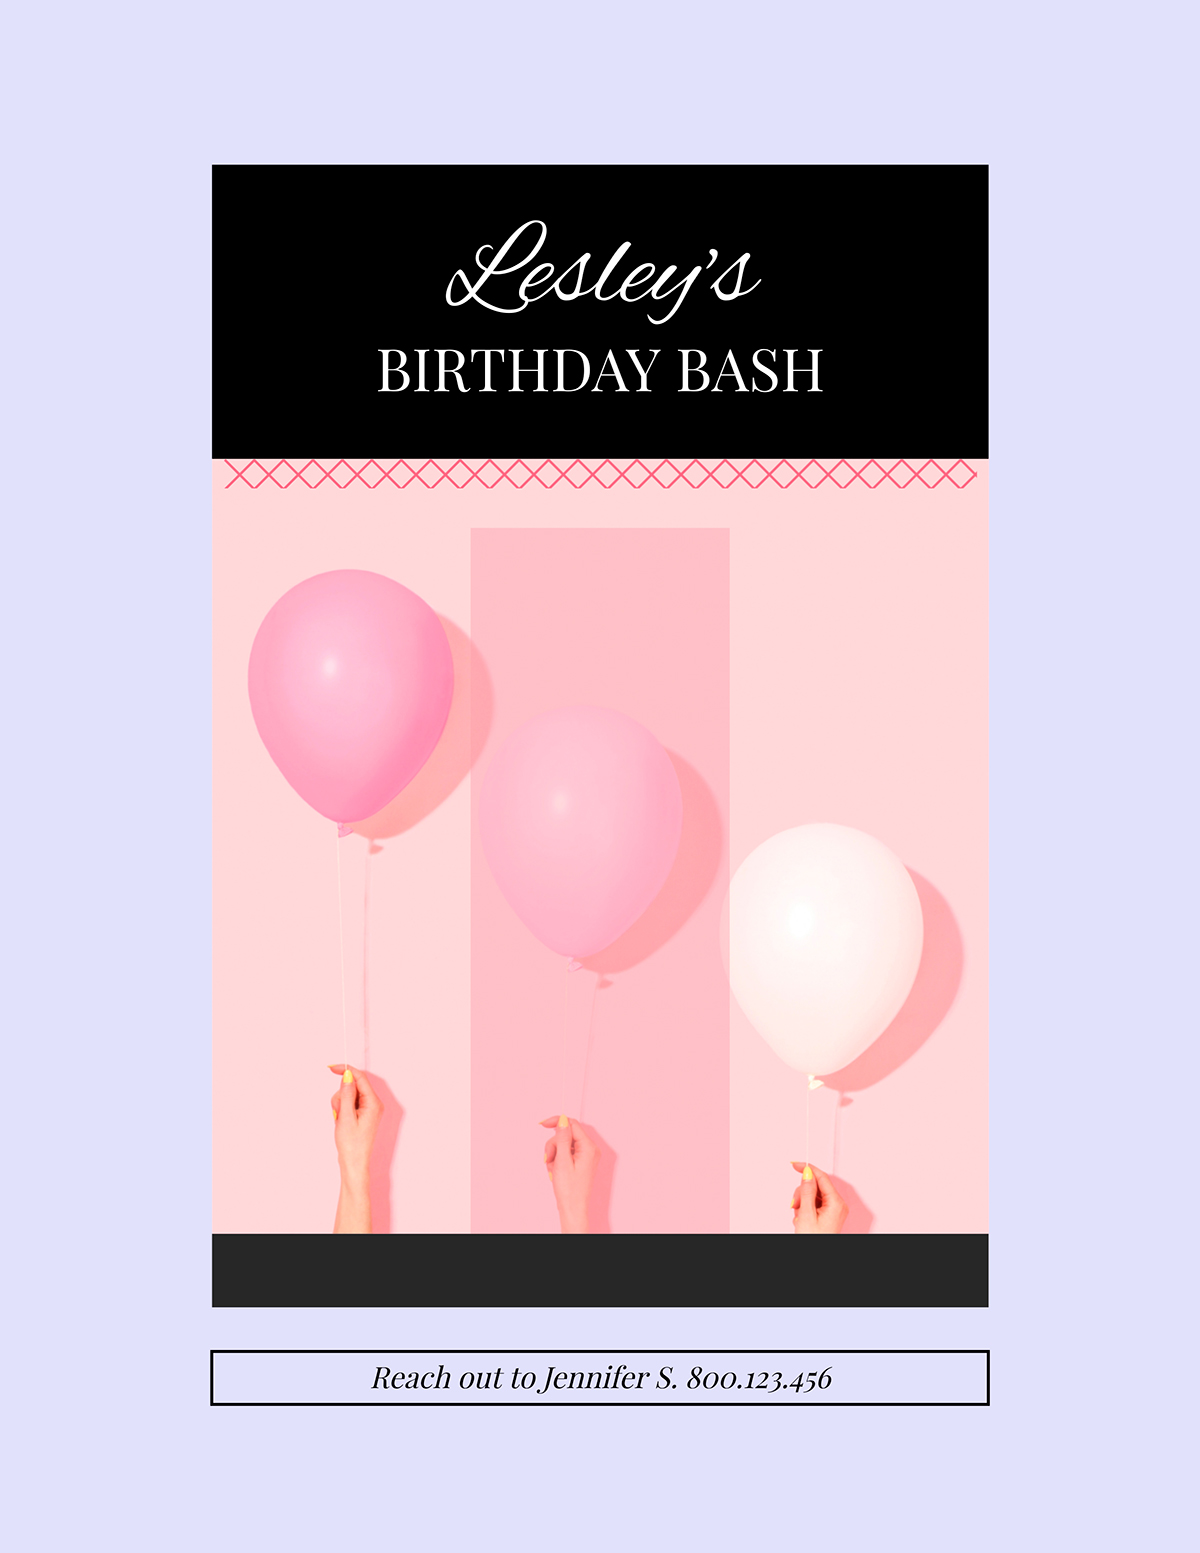 A purple and pink birthday flyer template available in Visme.